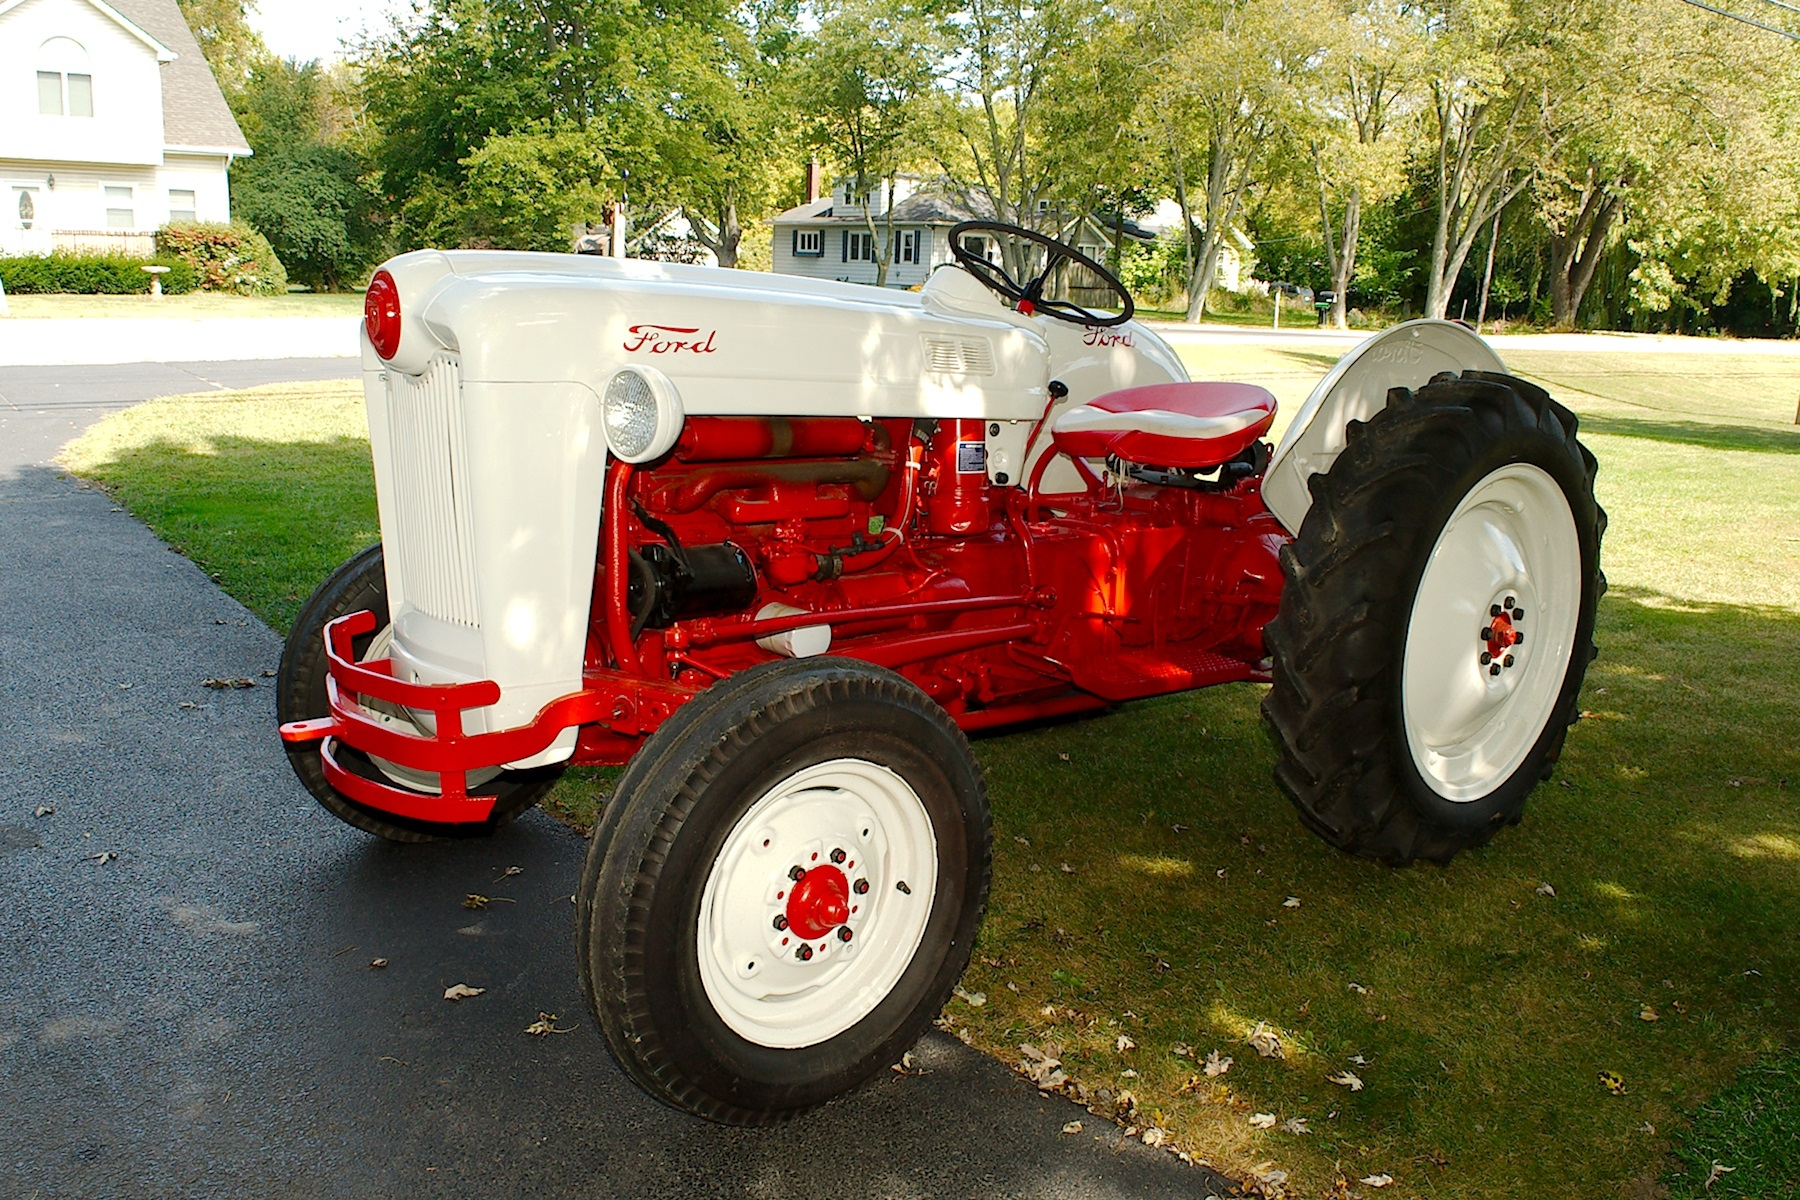 1953 Ford Golden Jubilee Antique Collectible Farm Tractor sale Fox River Grove Grayslake Volo Waucanda